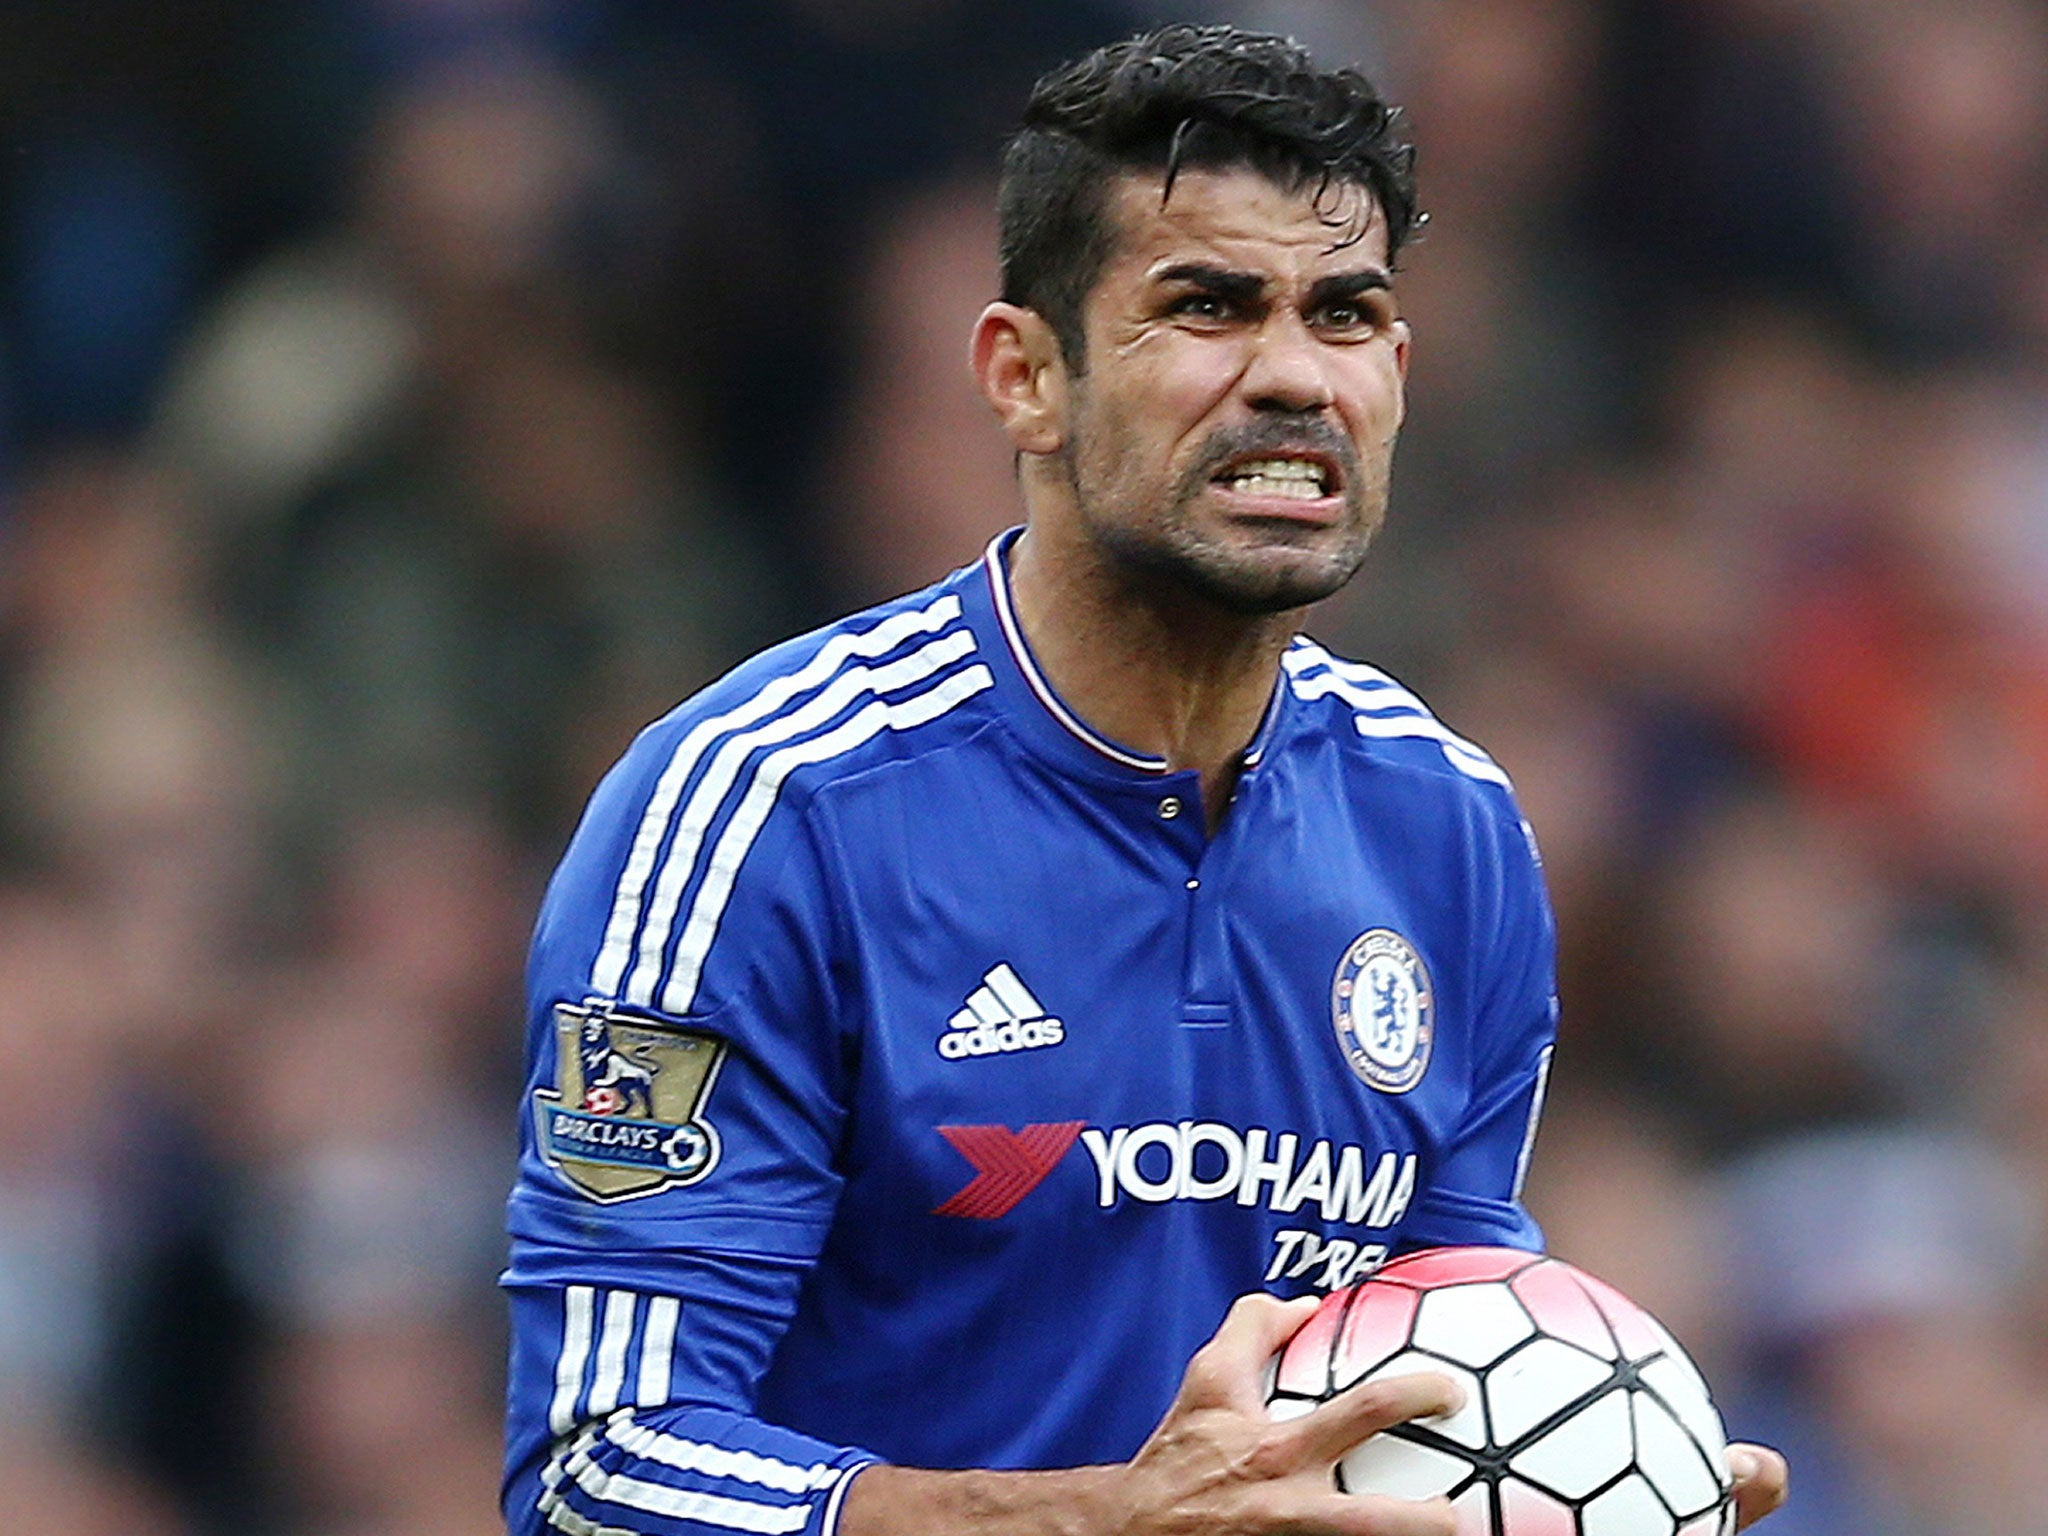 West Ham vs Chelsea: Diego Costa admits he's 'no angel' but refus...